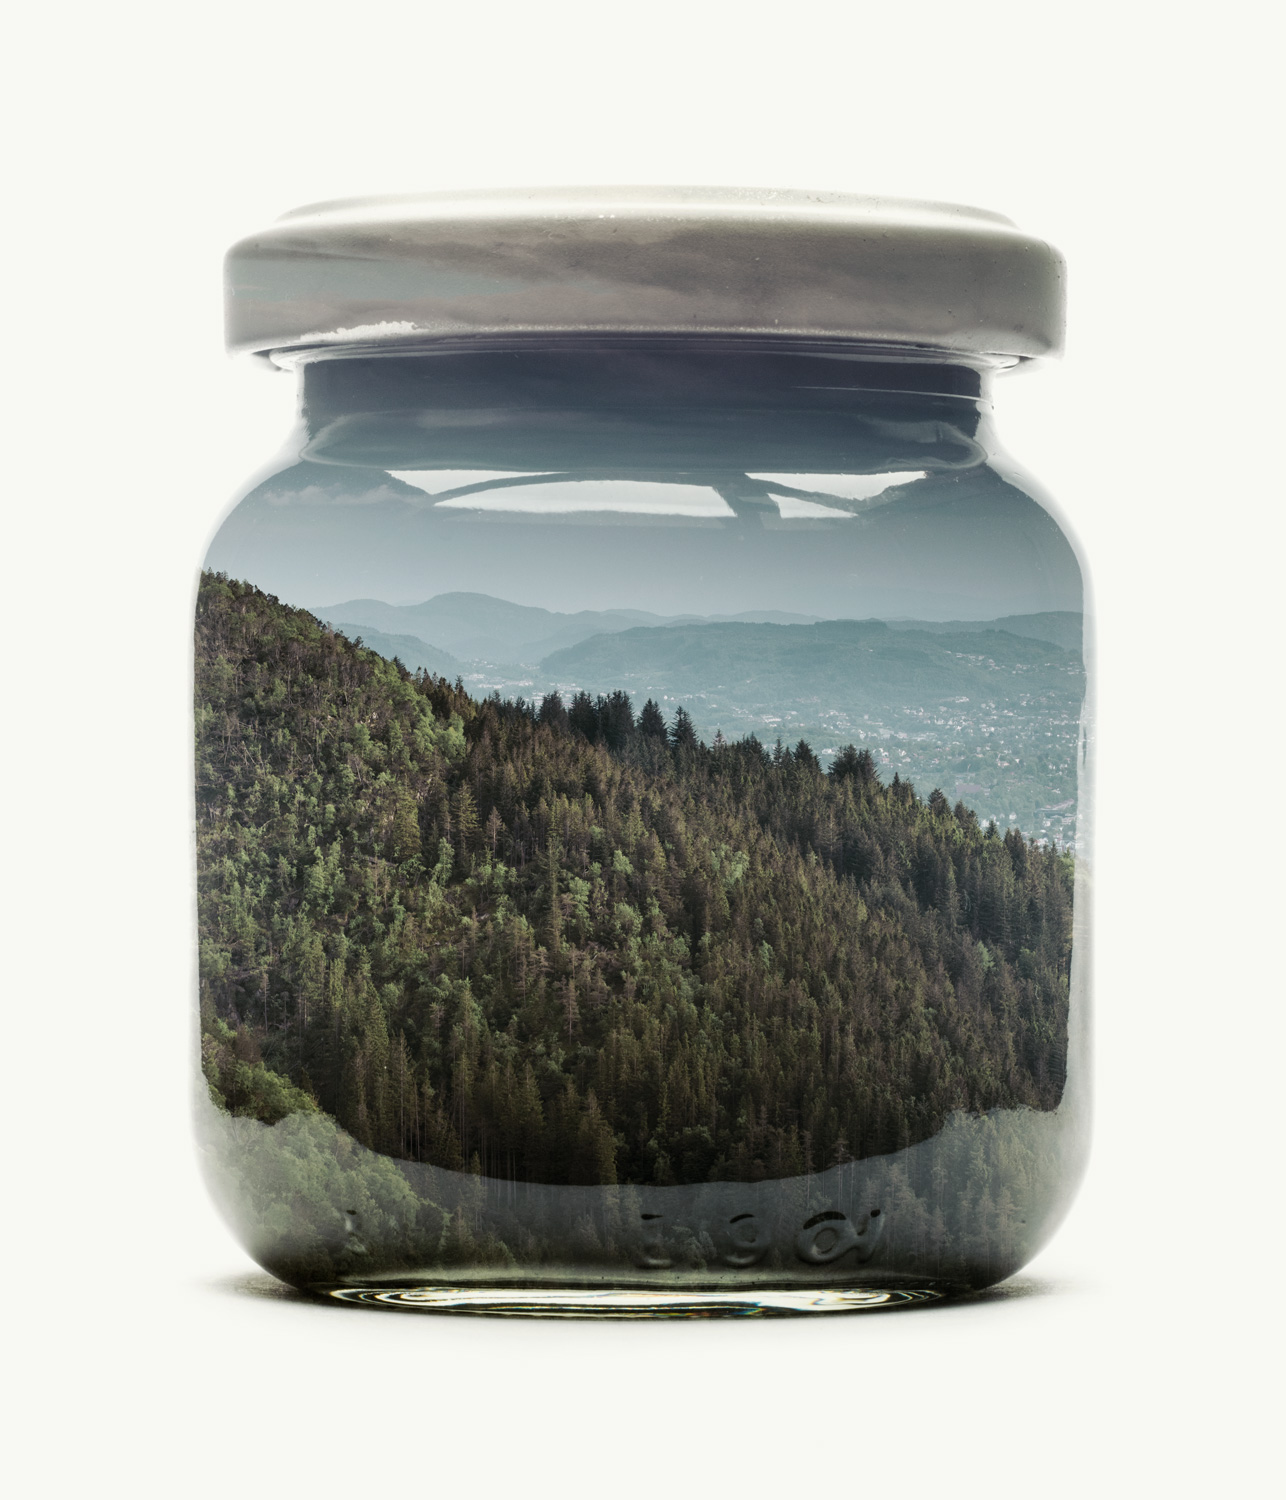 Visual Artwork: Bergen Edition - Jarred Mountain Forest by artist and creator Christoffer Relander